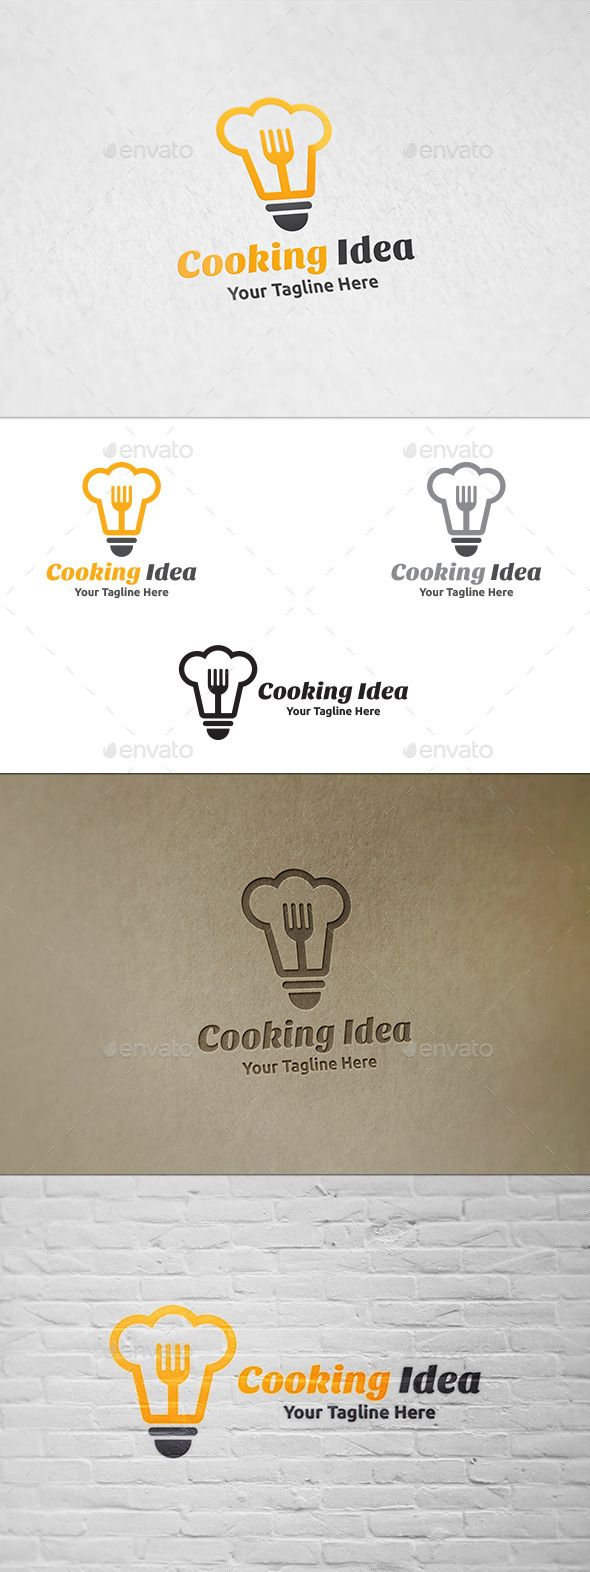 Cooking Idea - Logo Template